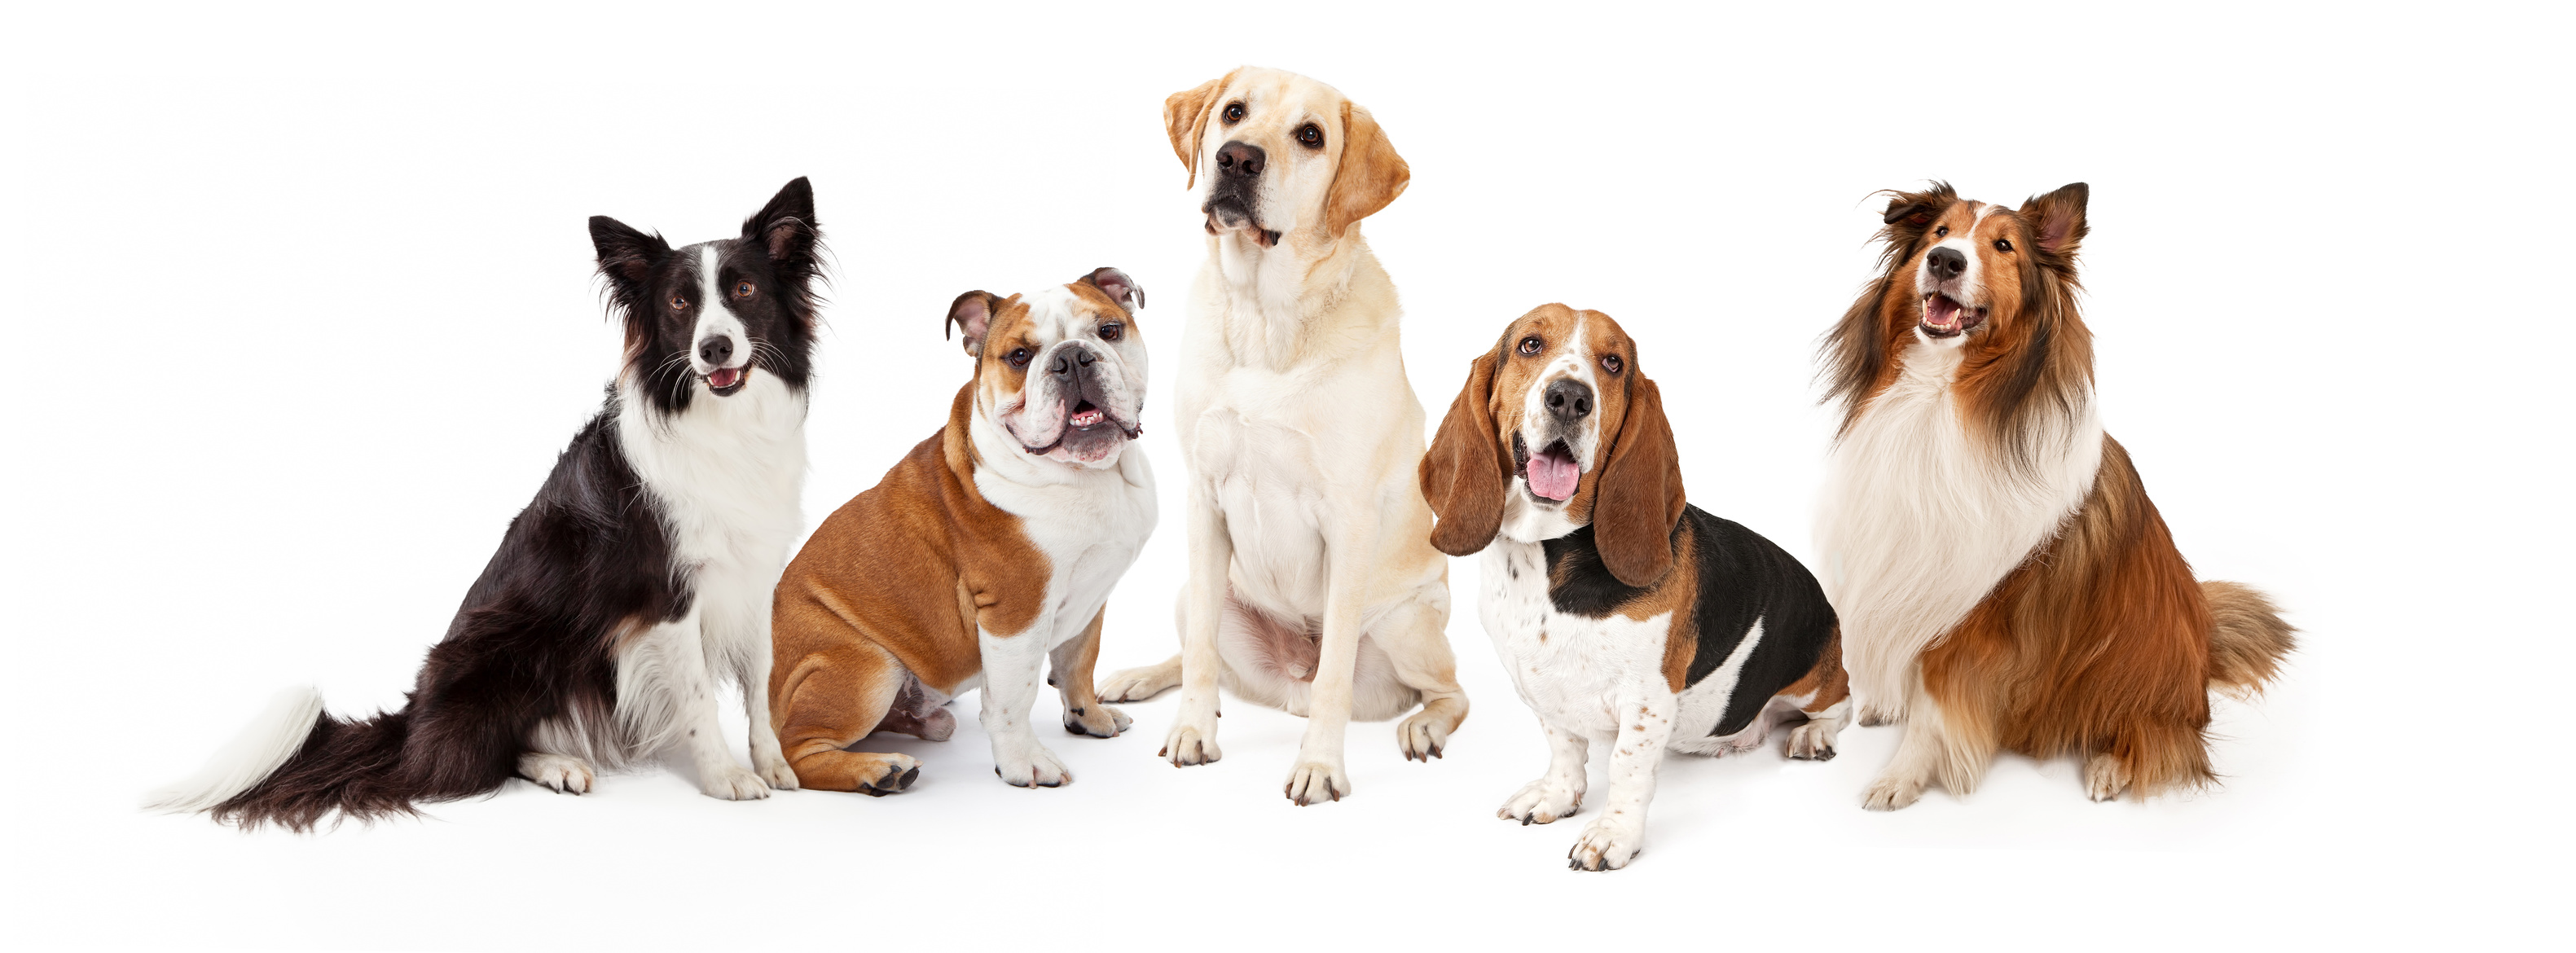 Let's see the Popular and Cute Medium Dog Breeds